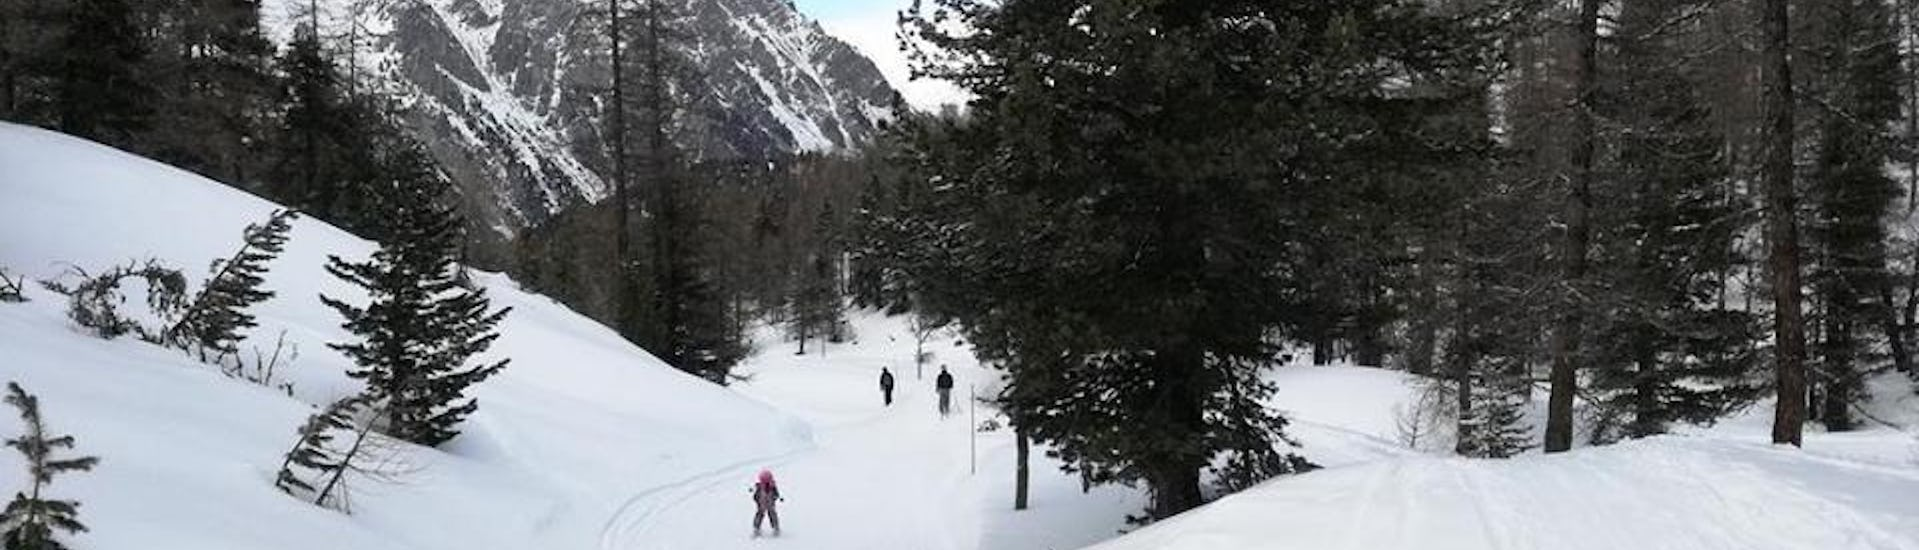 Ski Instructor Private for Kids - From 2 Participants